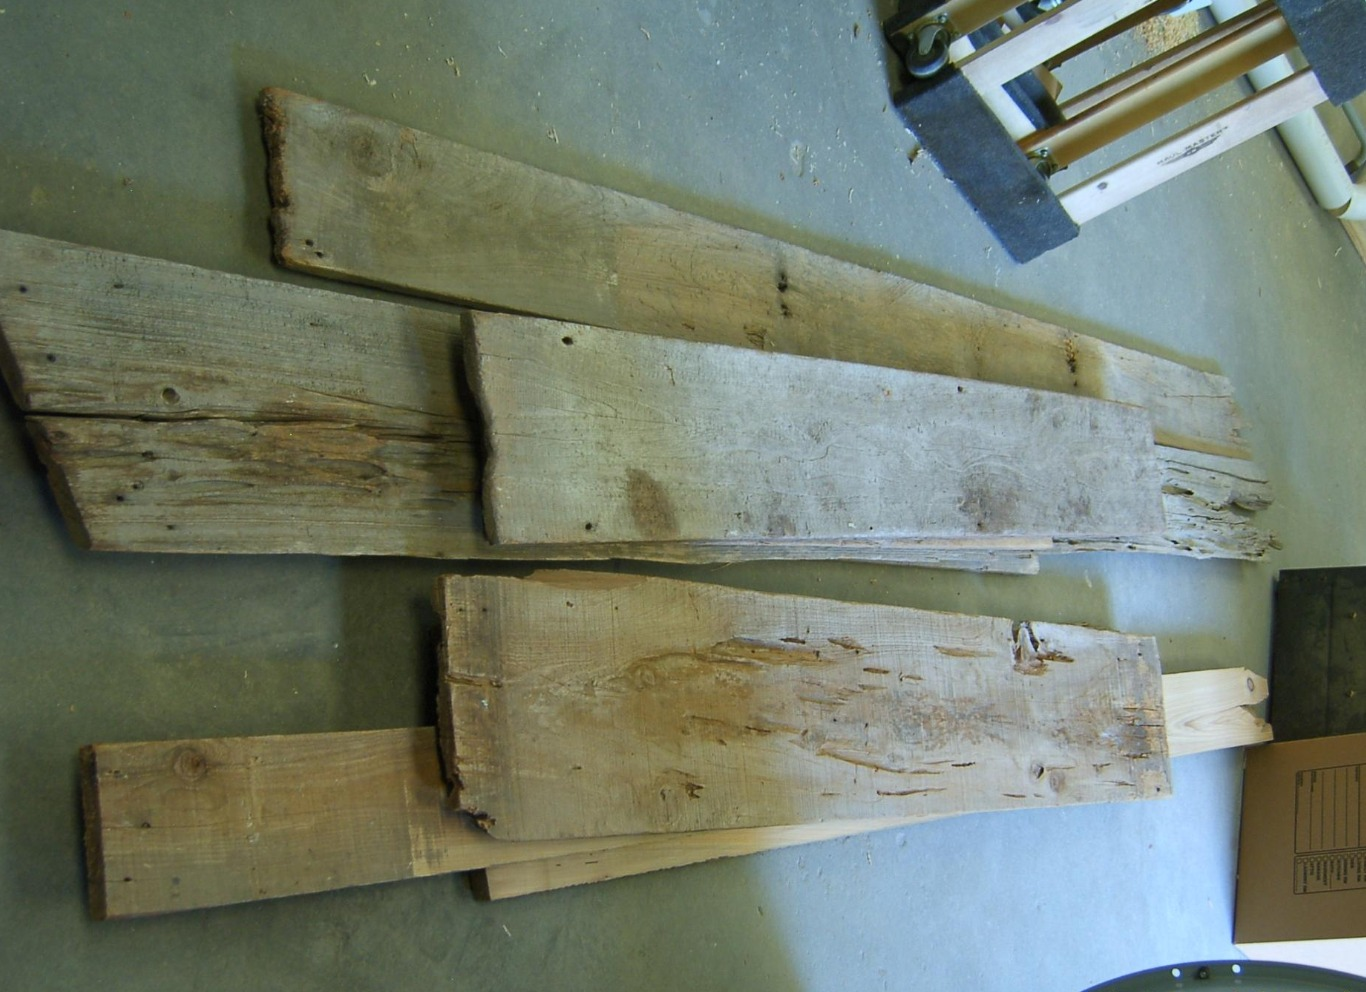 Cypress boards reclaimed from an old barn boards that had belonged to the client's father.